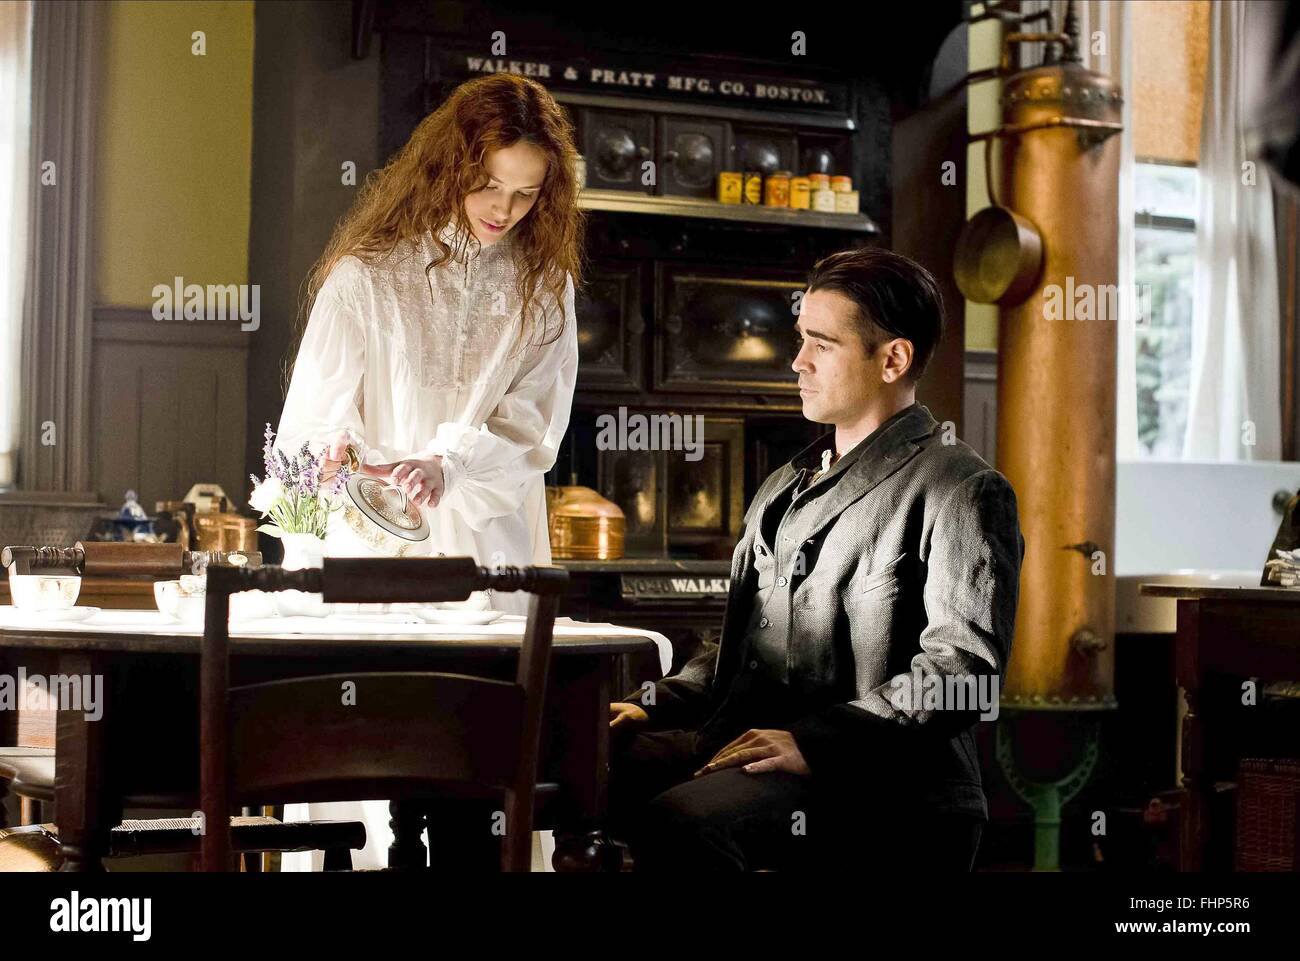 JESSICA BROWN FINDLAY & COLIN FARRELL A NEW YORK WINTER'S TALE; WINTER'S TALE (2014) - Stock Image